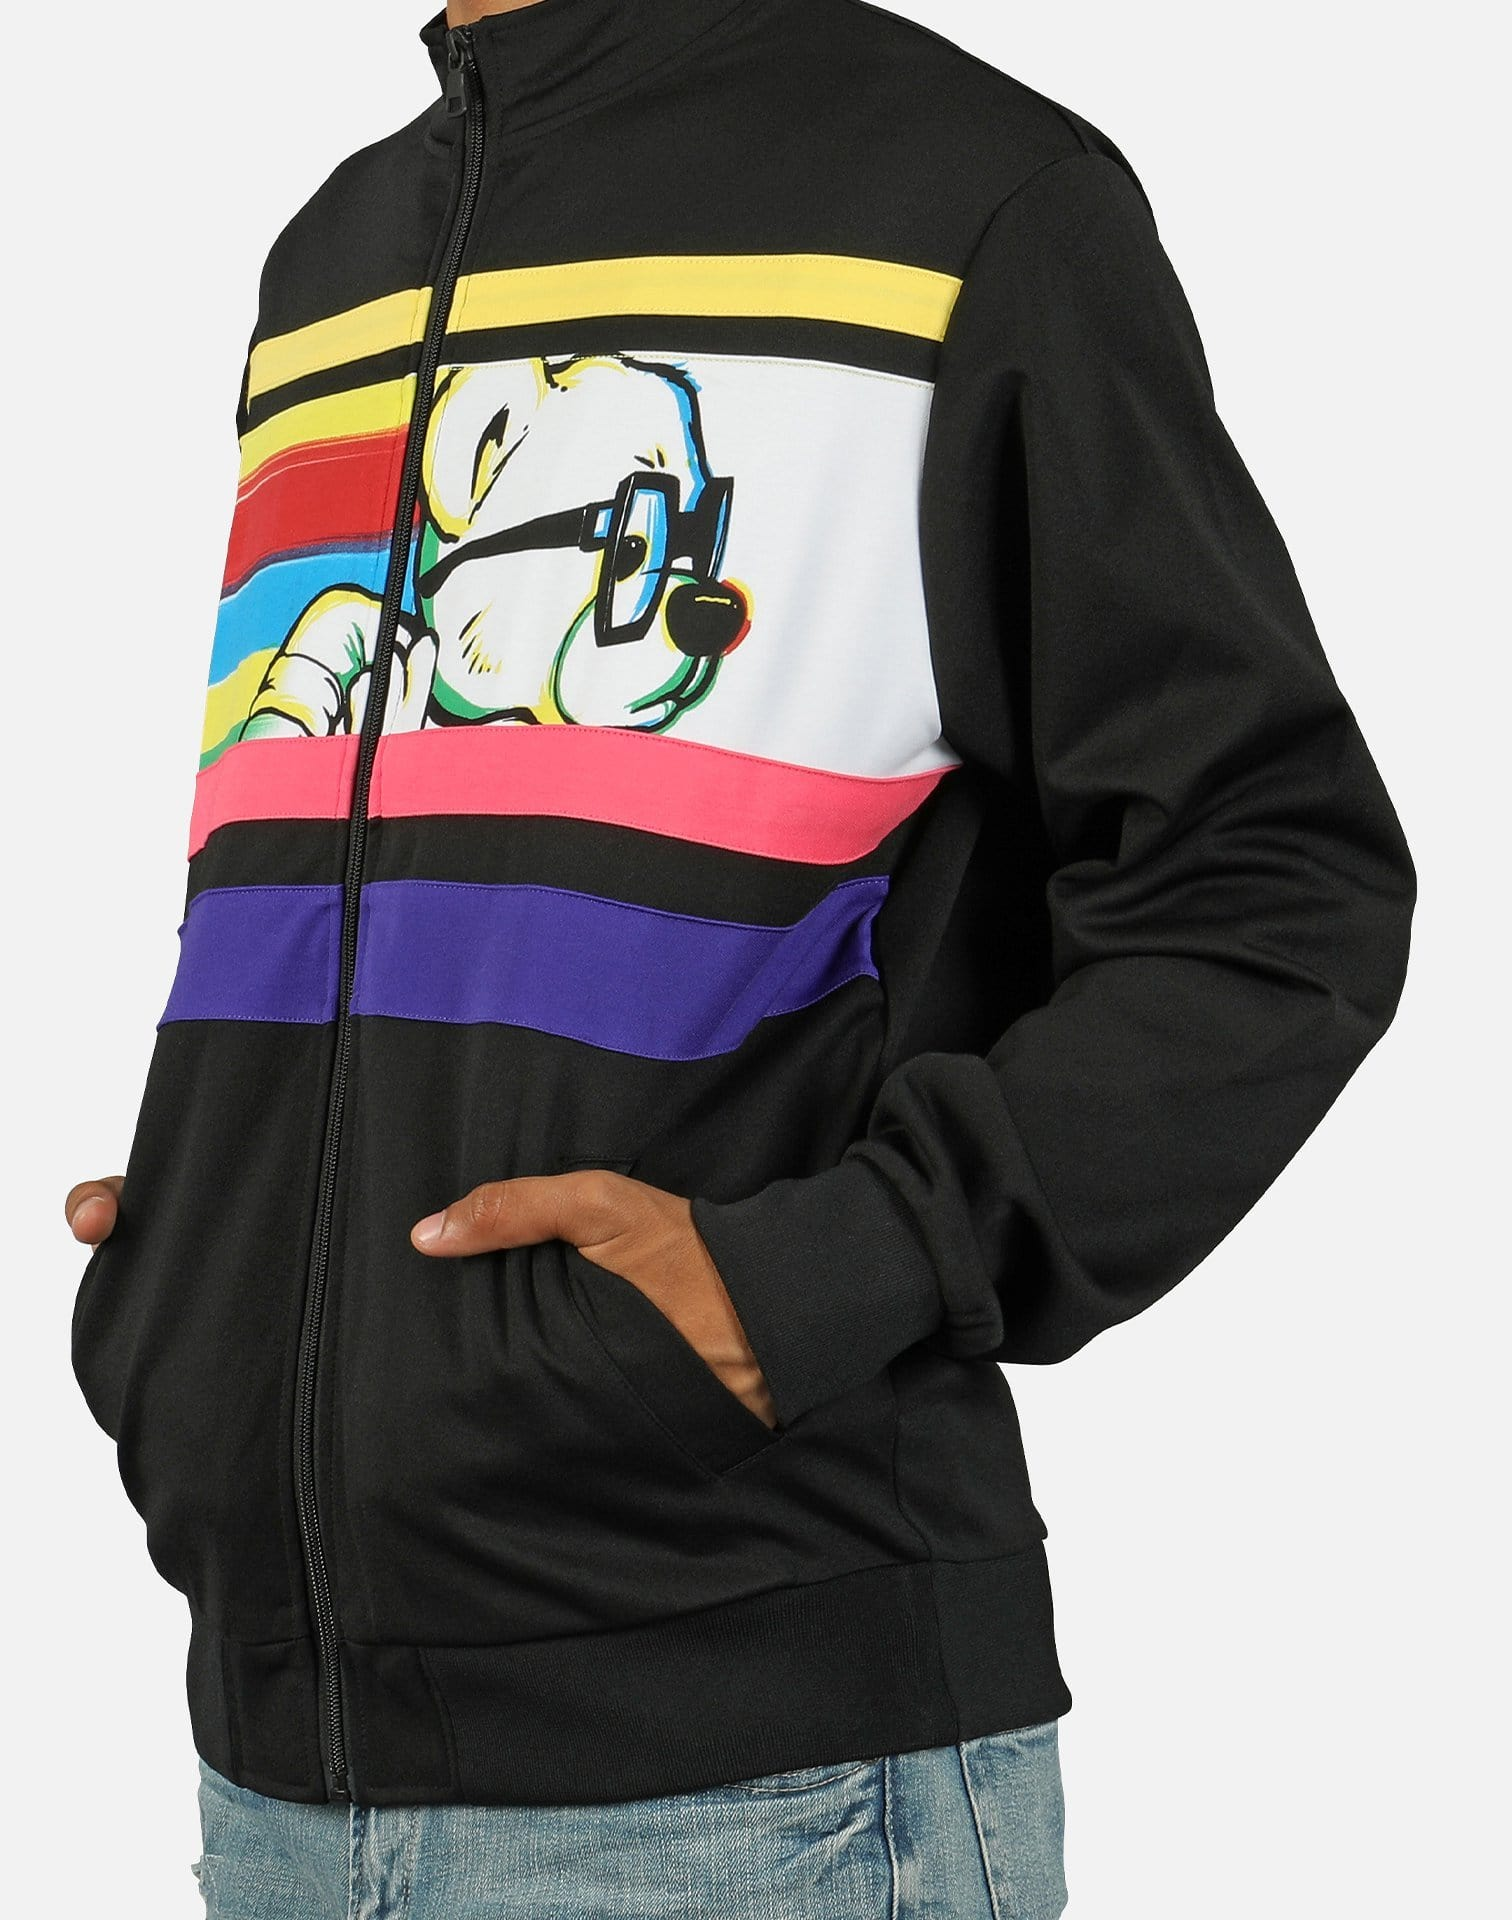 Hustle Gang Men's H-Bear Pull-Up Track Jacket